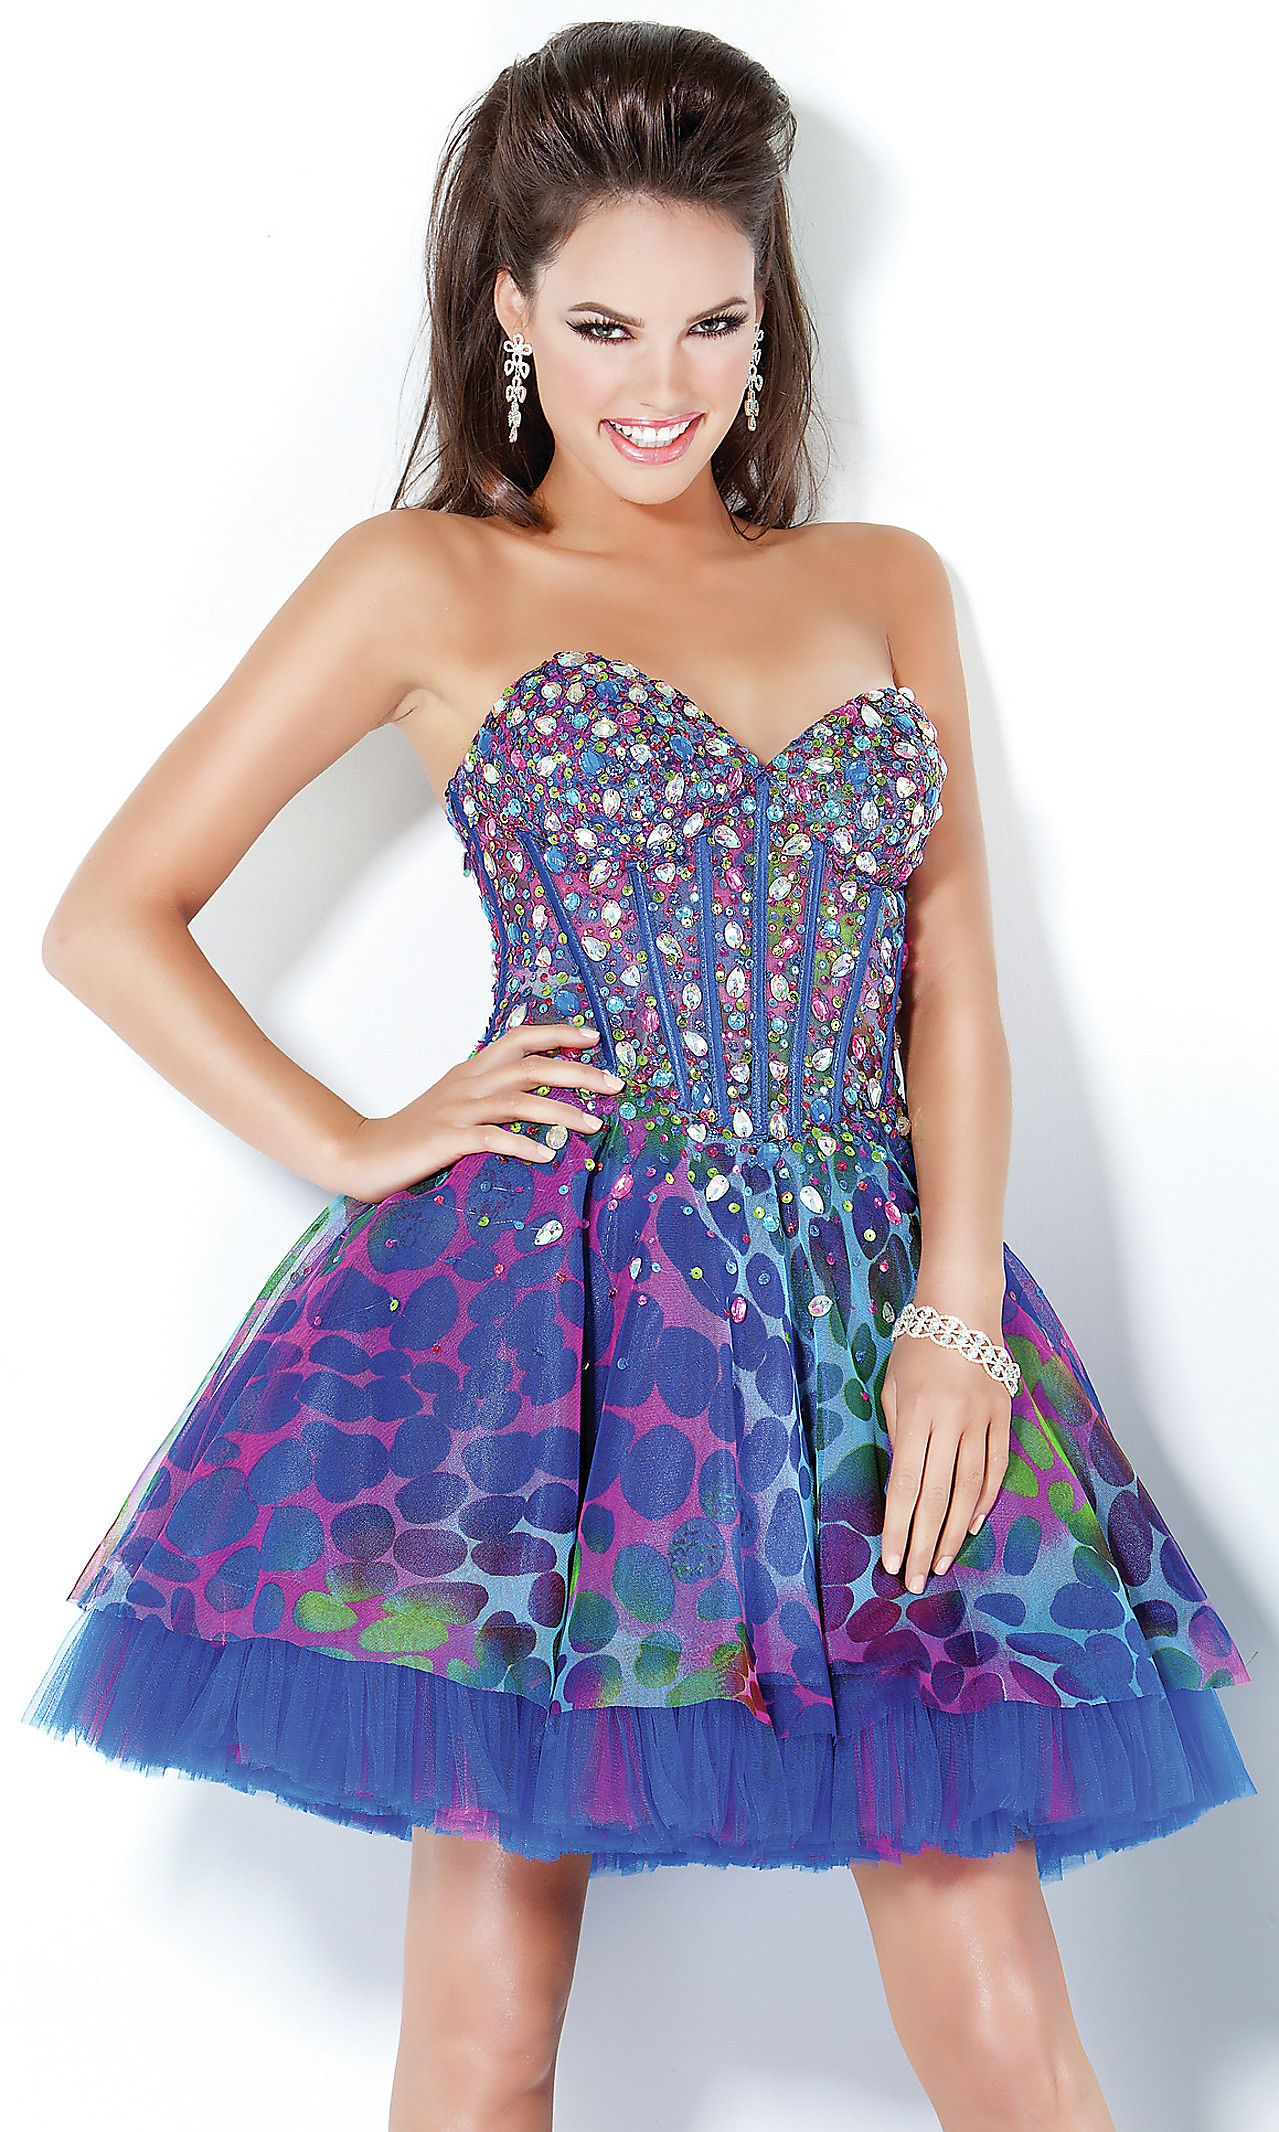 2012 Jovani Short Dress 3806 JO-3806 | that style | Pinterest